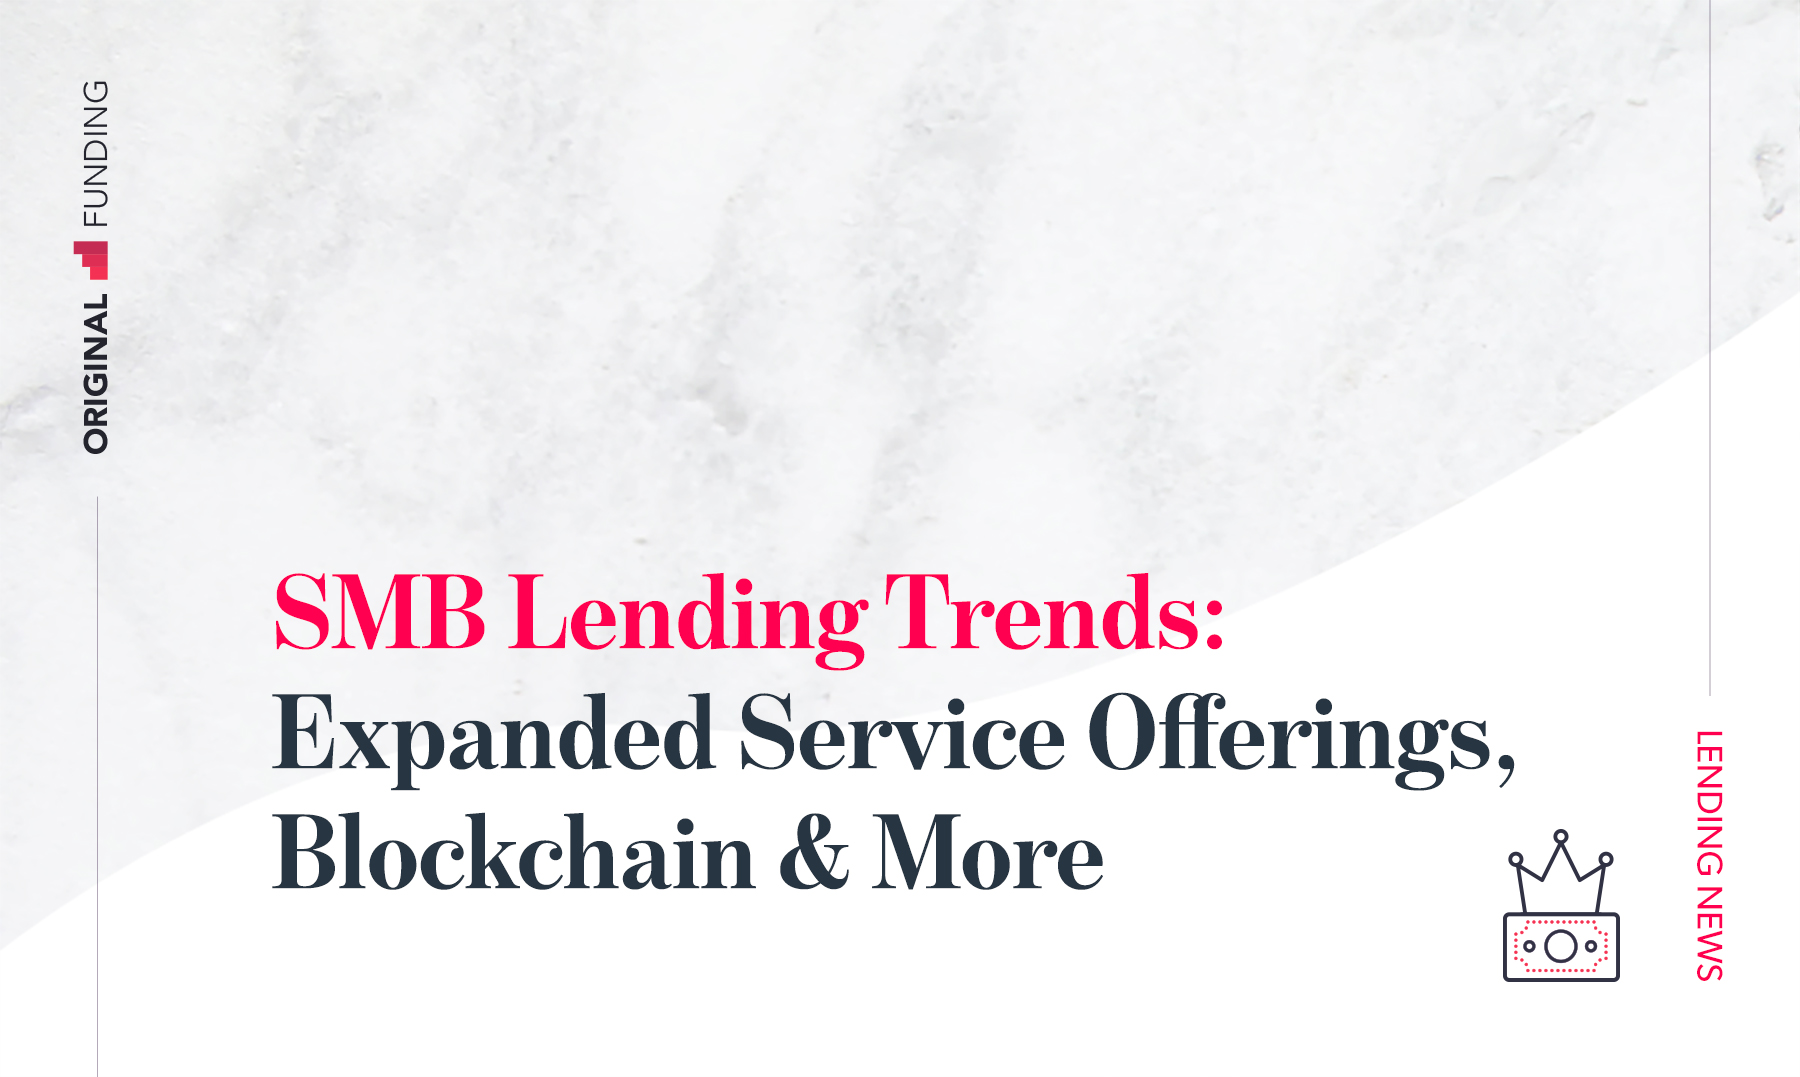 SMB Lending Trends: Expanded Service Offerings, Blockchain & More